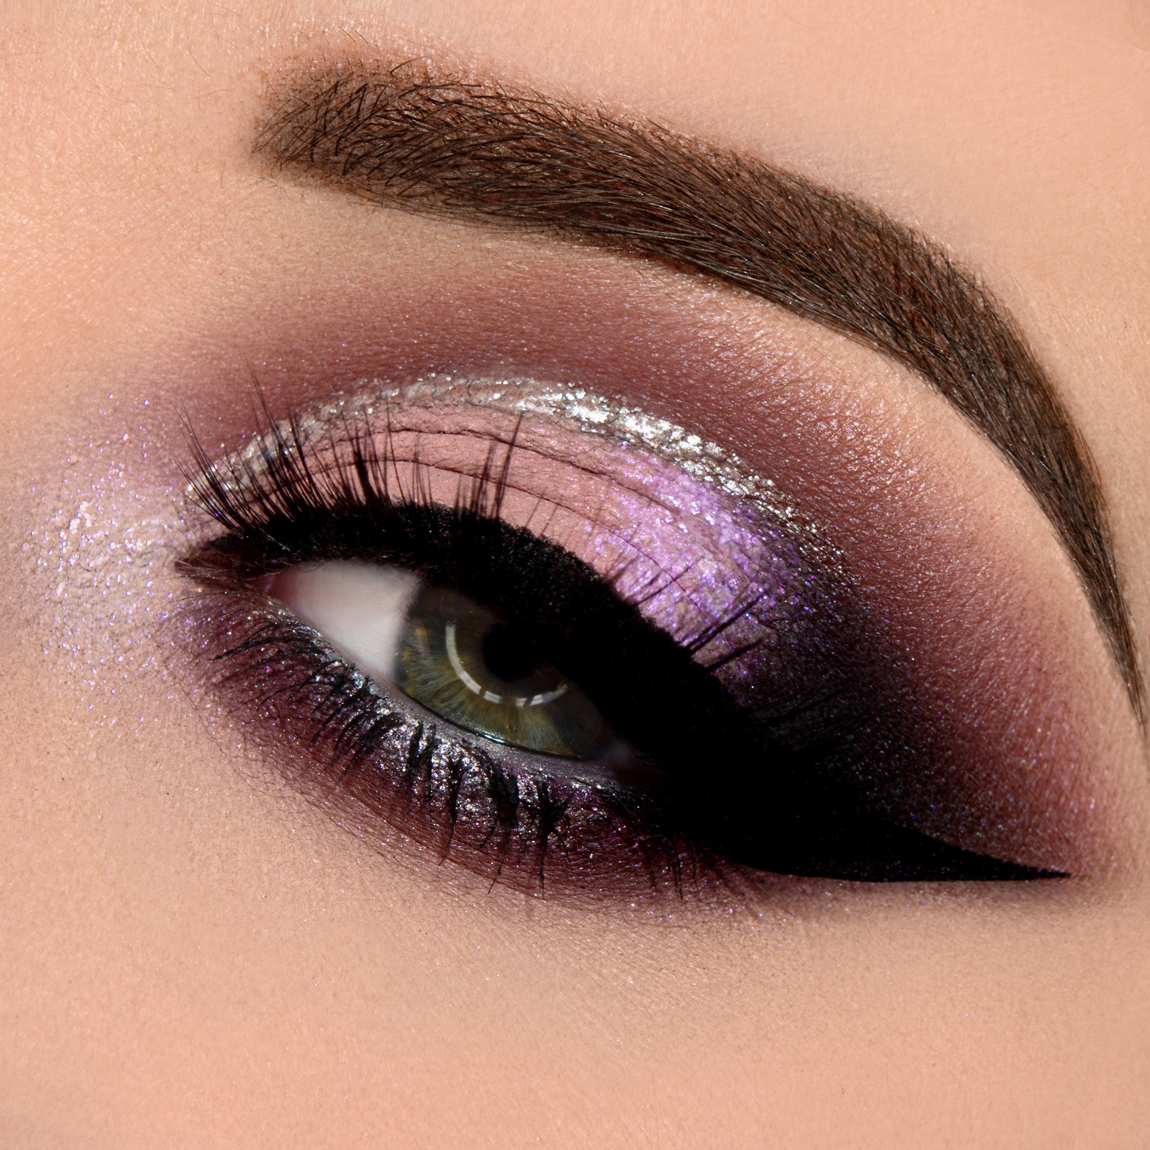 Idee makeup: pink and silver eye makeup